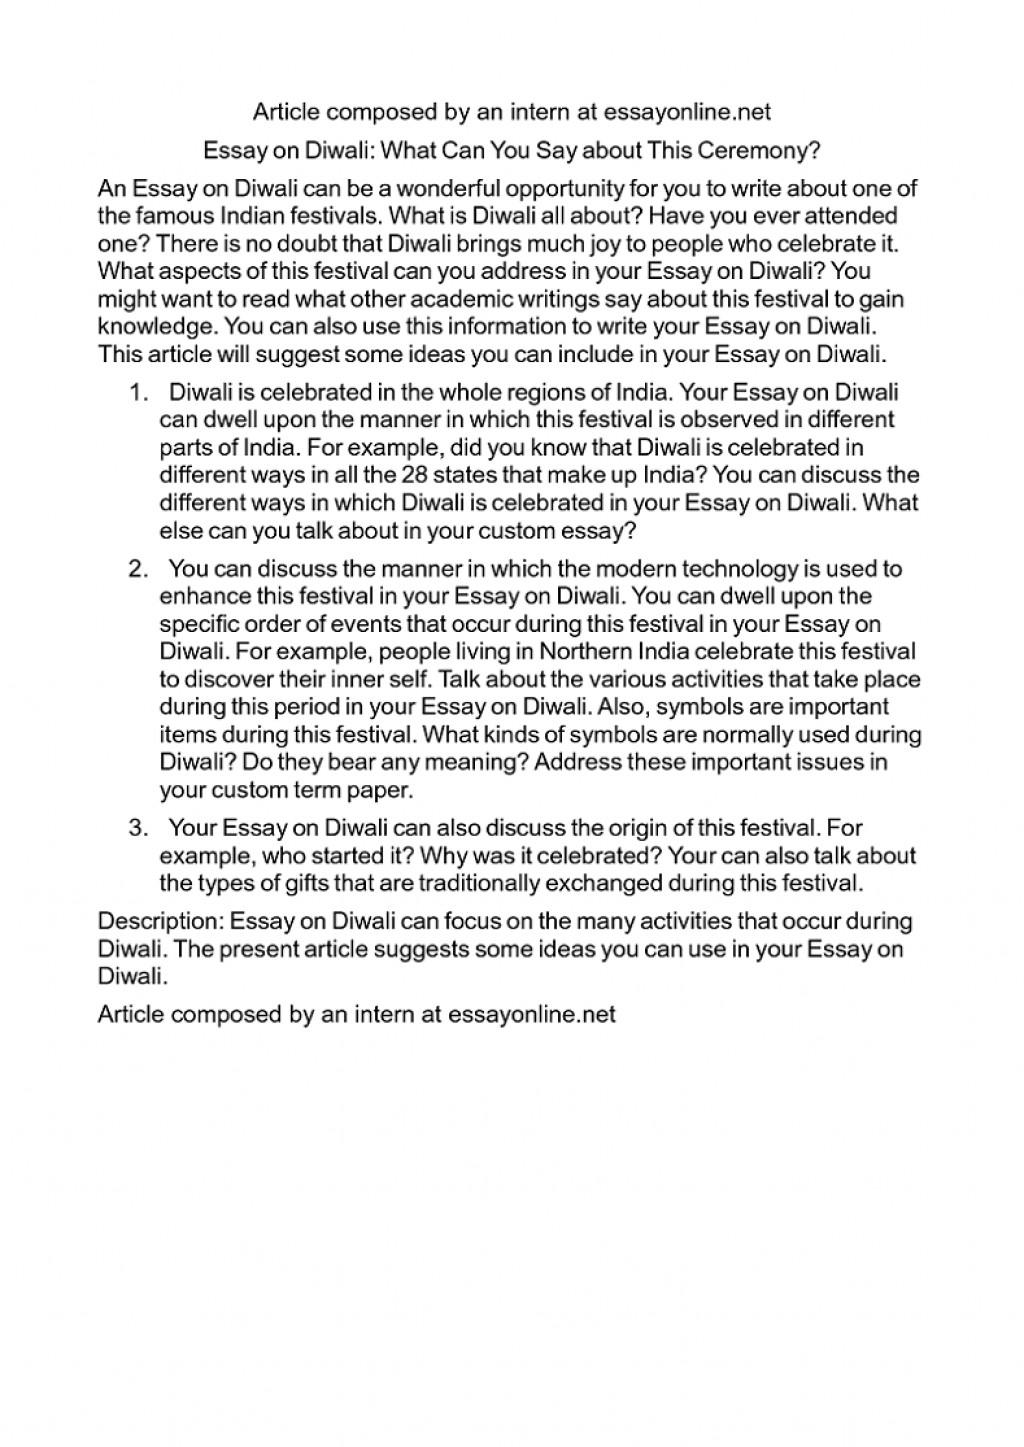 004 Essay Example Simple On Diwali In English For Class Striking 1 My Favourite Festival Large